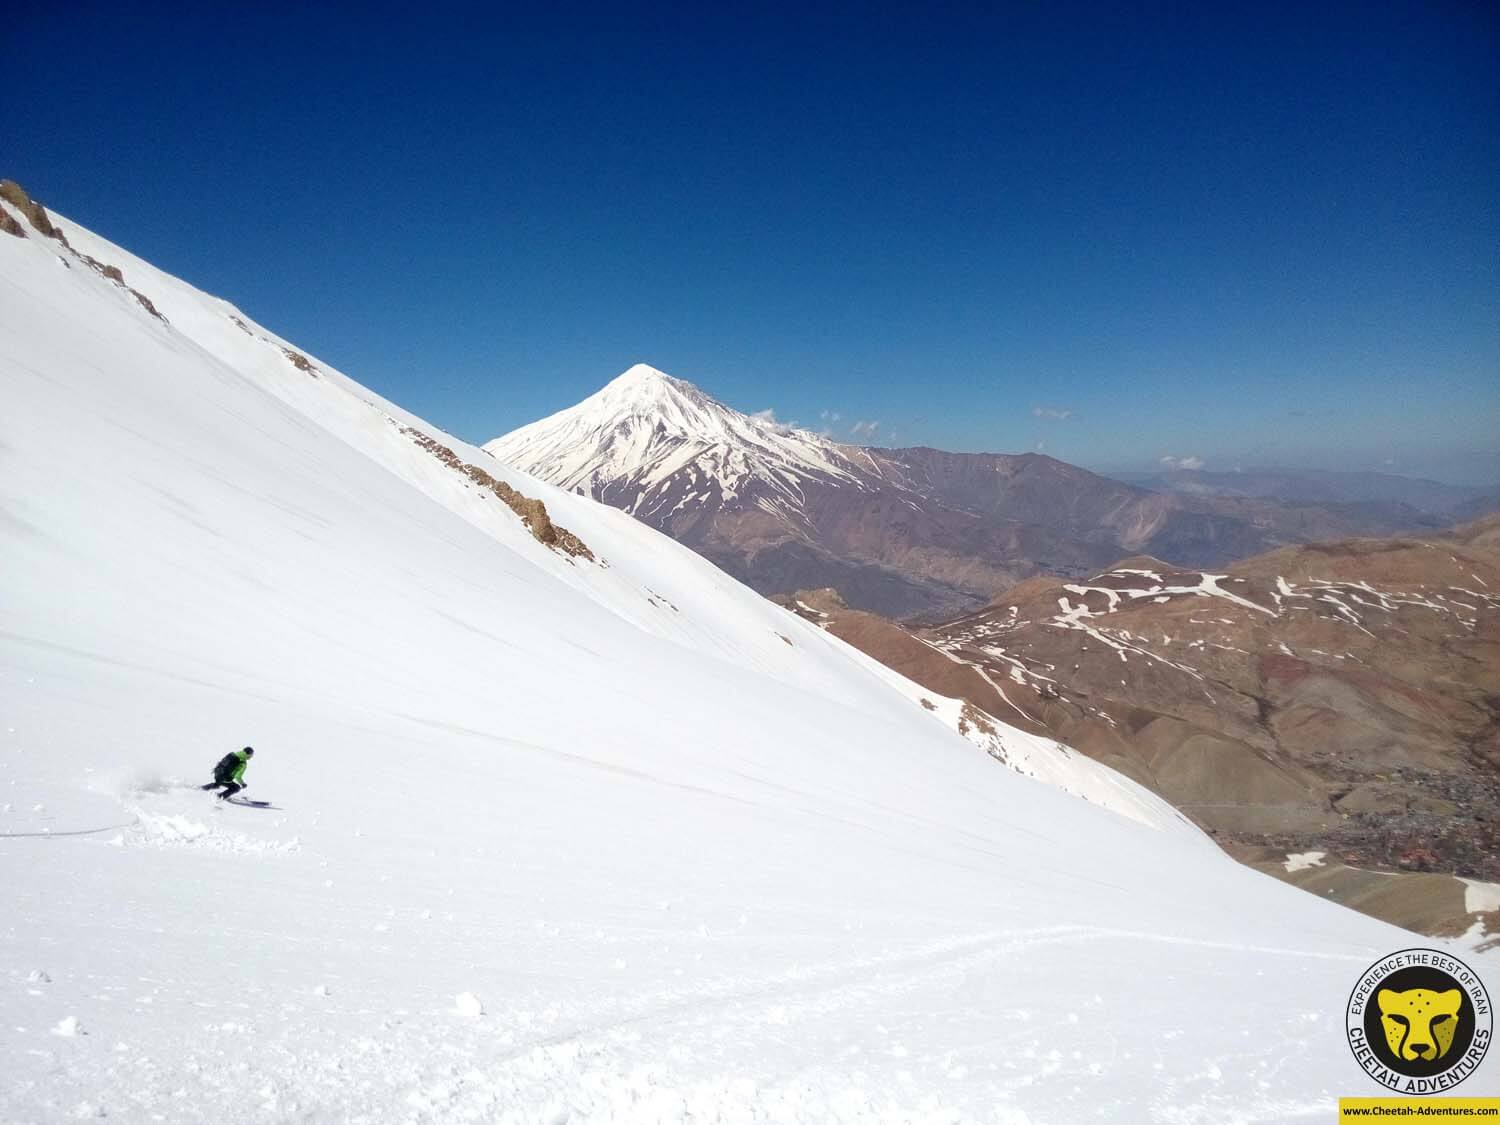 3 Skiing on Angemar Peak (4050m), Doberar Mountain Range, Damavand Ski Tour